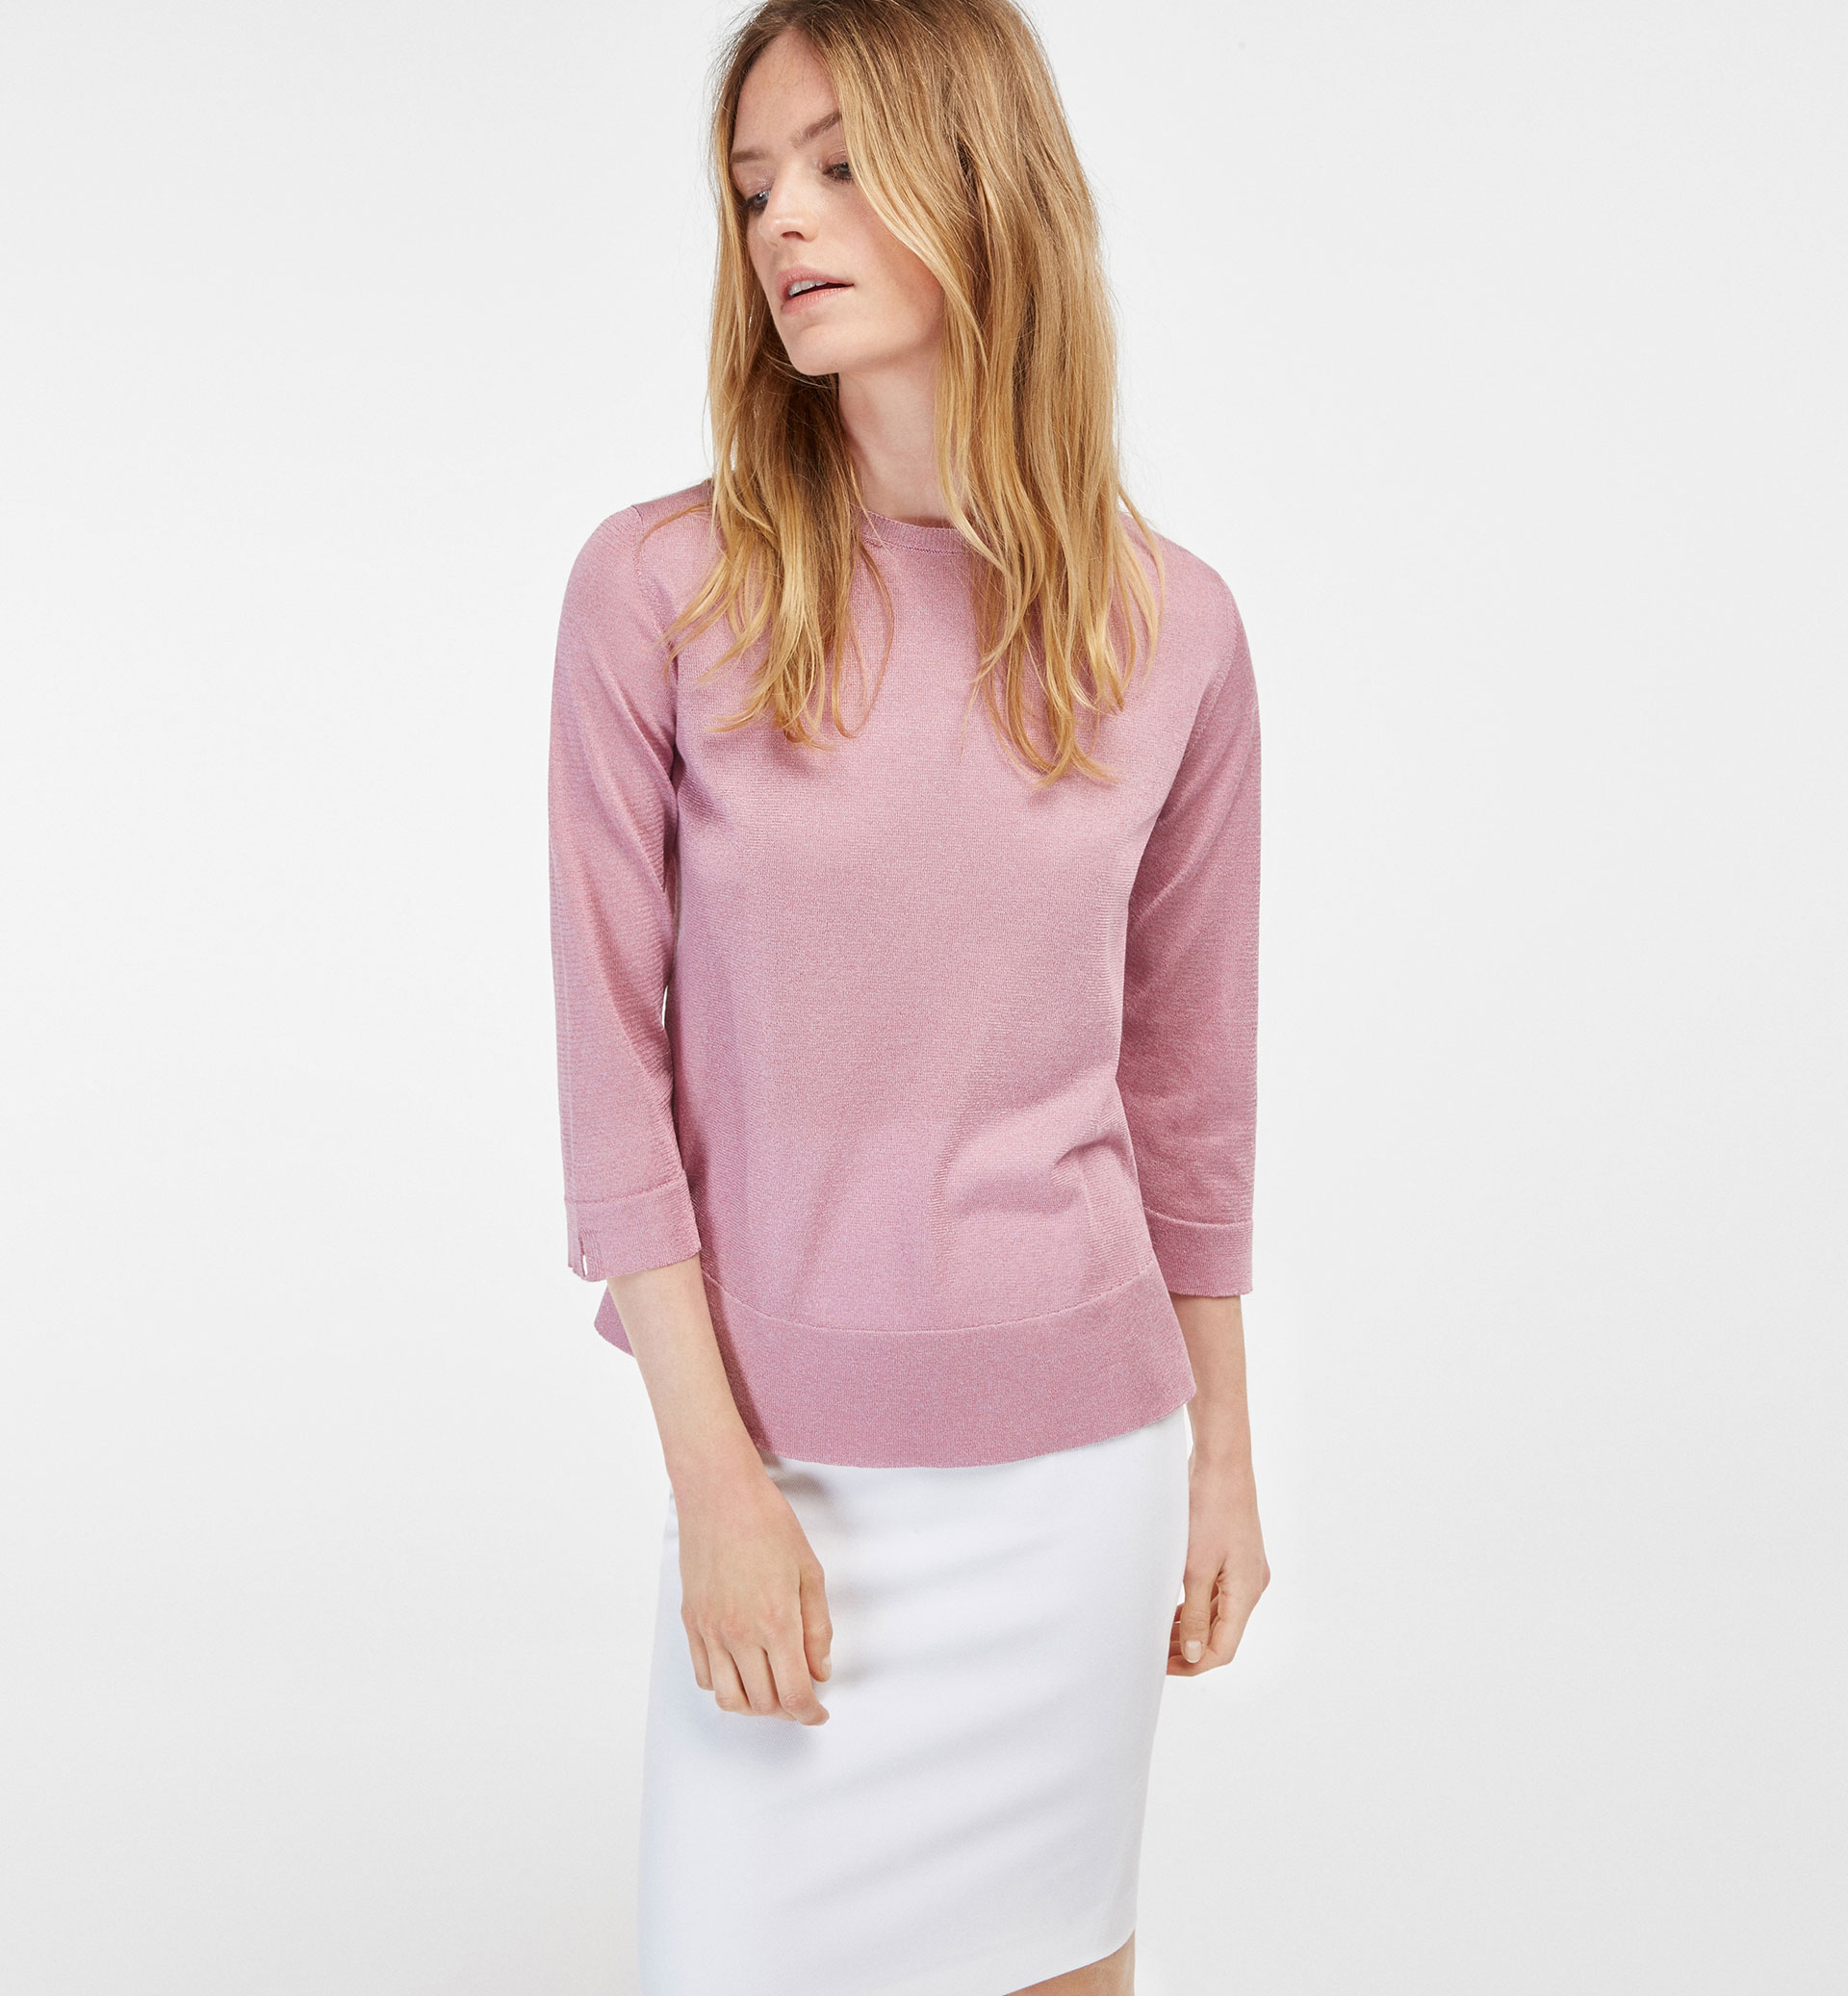 A-LINE STYLE CAPE SWEATER